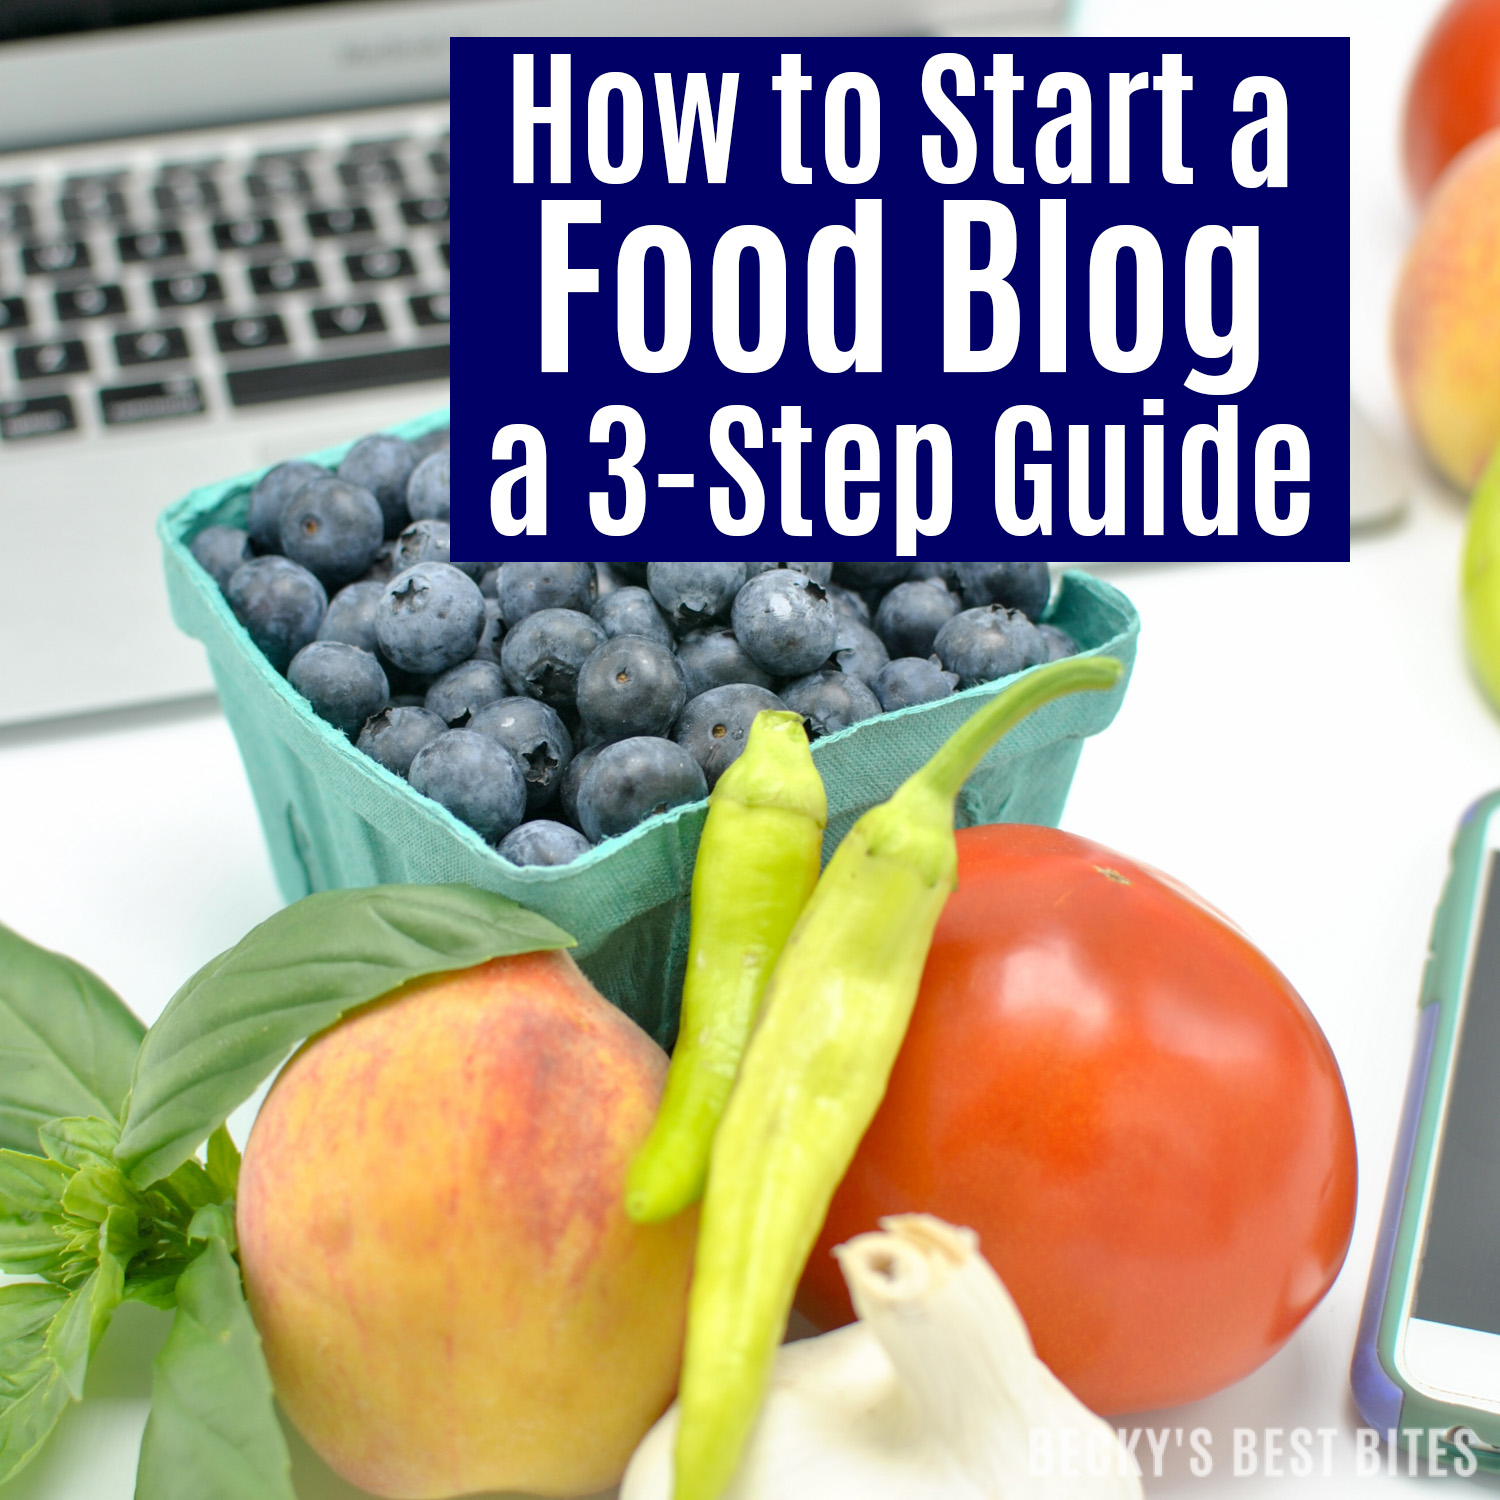 How to Start a Food Blog! A quick and easy 3-Step Guide to help get your very own website up and running in 15 minutes or less! Start blogging today! | beckysbestbites.com